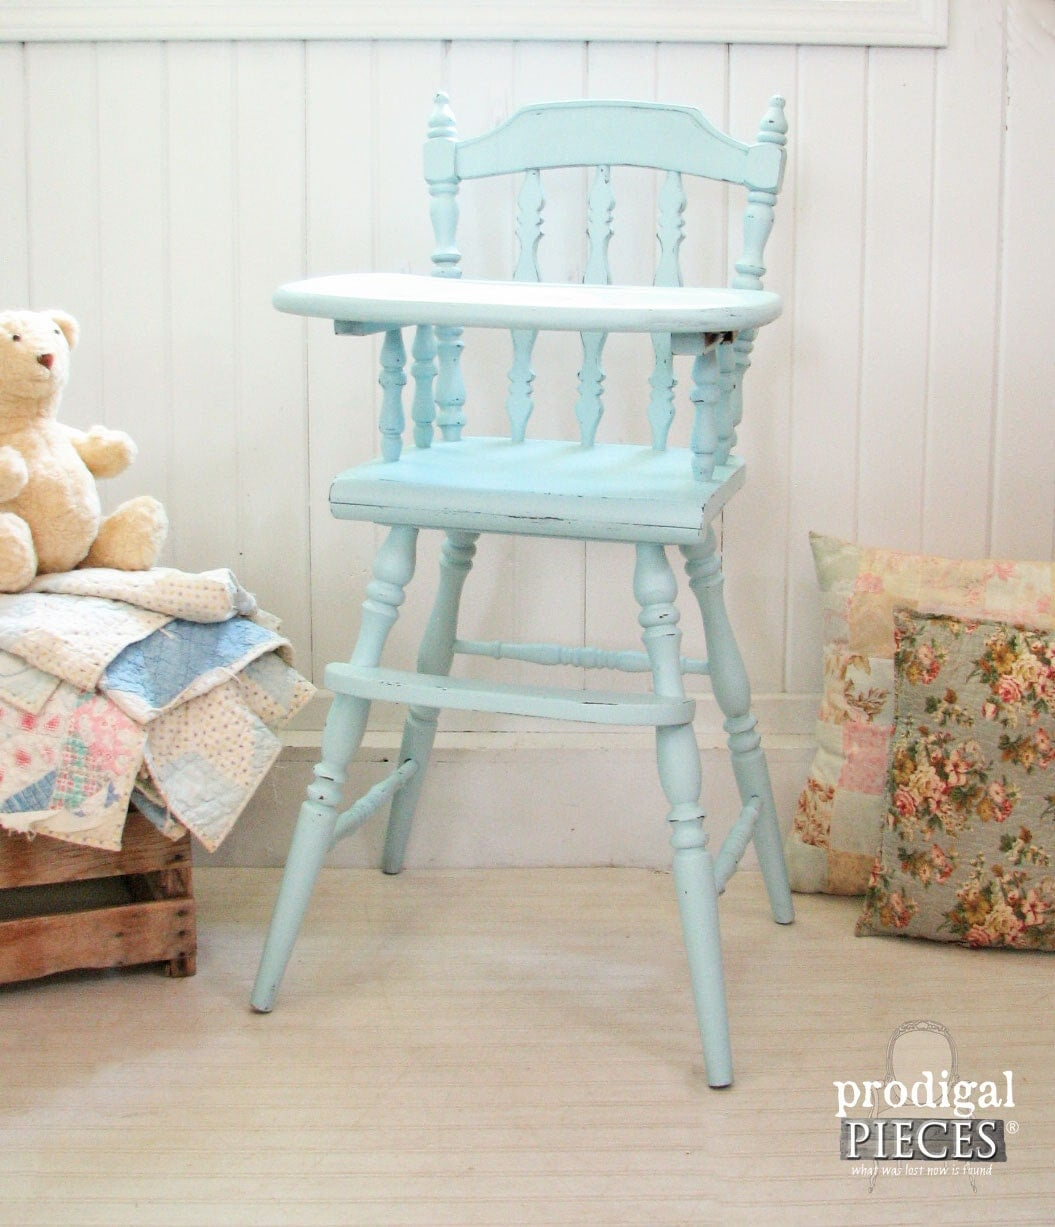 High Chair For Baby Boy Aqua Blue Vintage Wooden Baby High Chair With Hand Painted